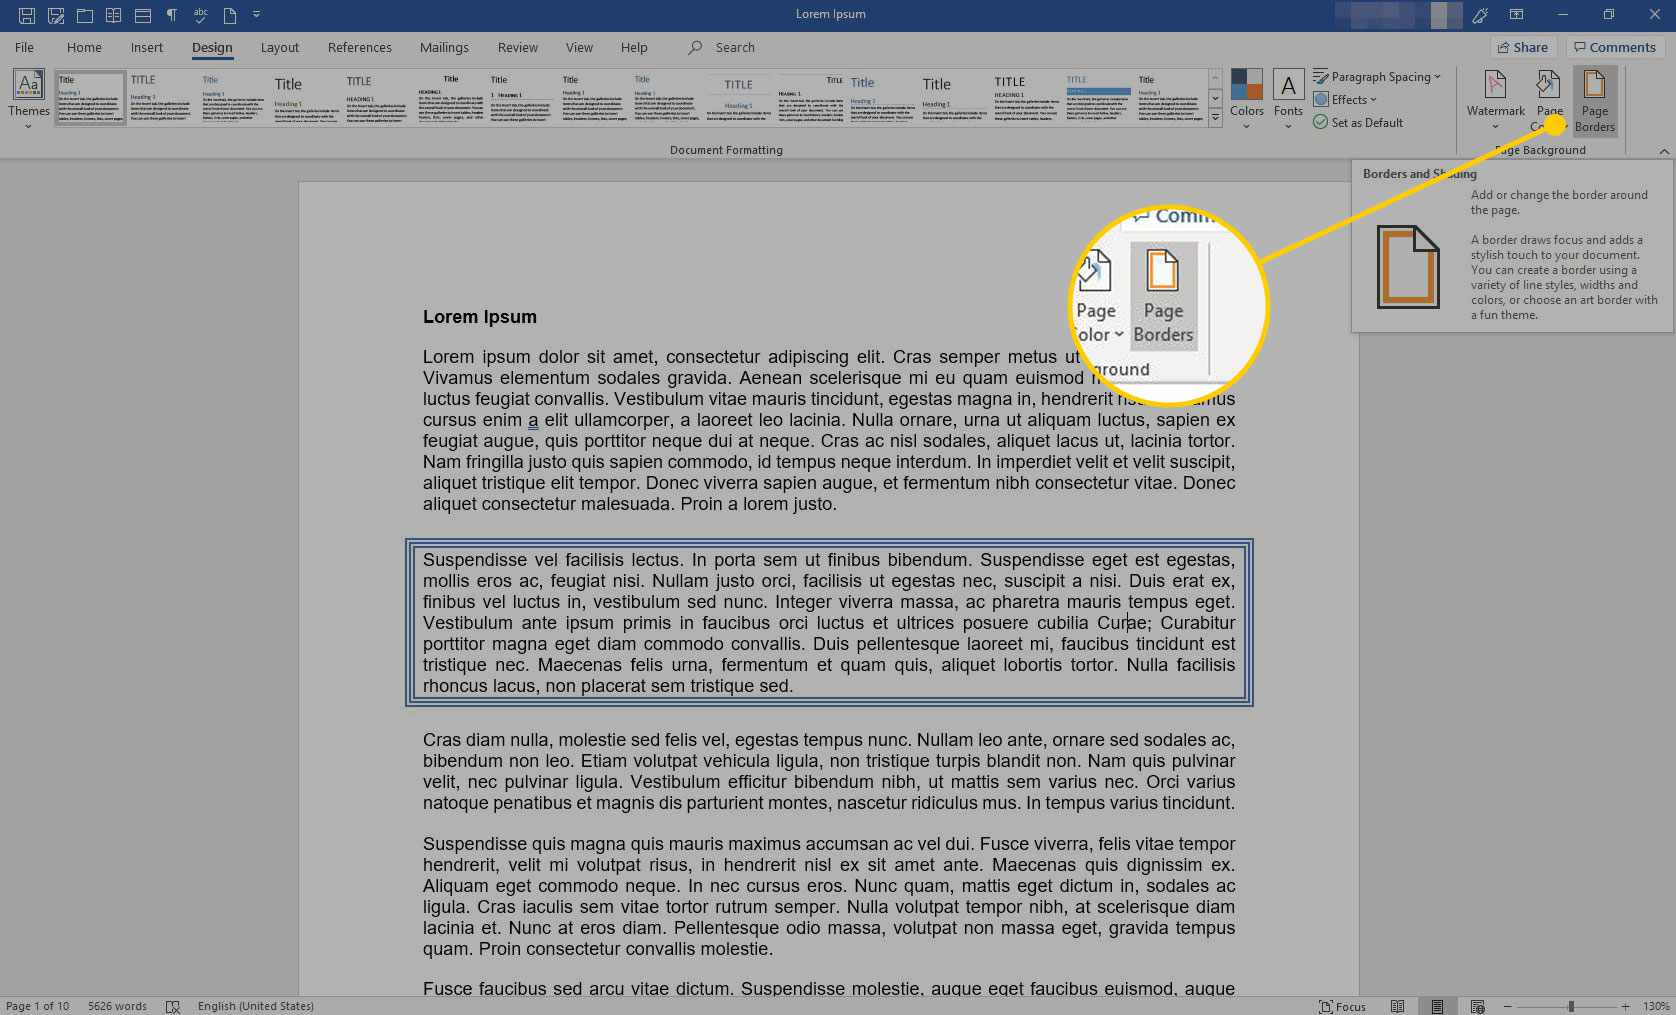 Word with the Page Borders button highlighted